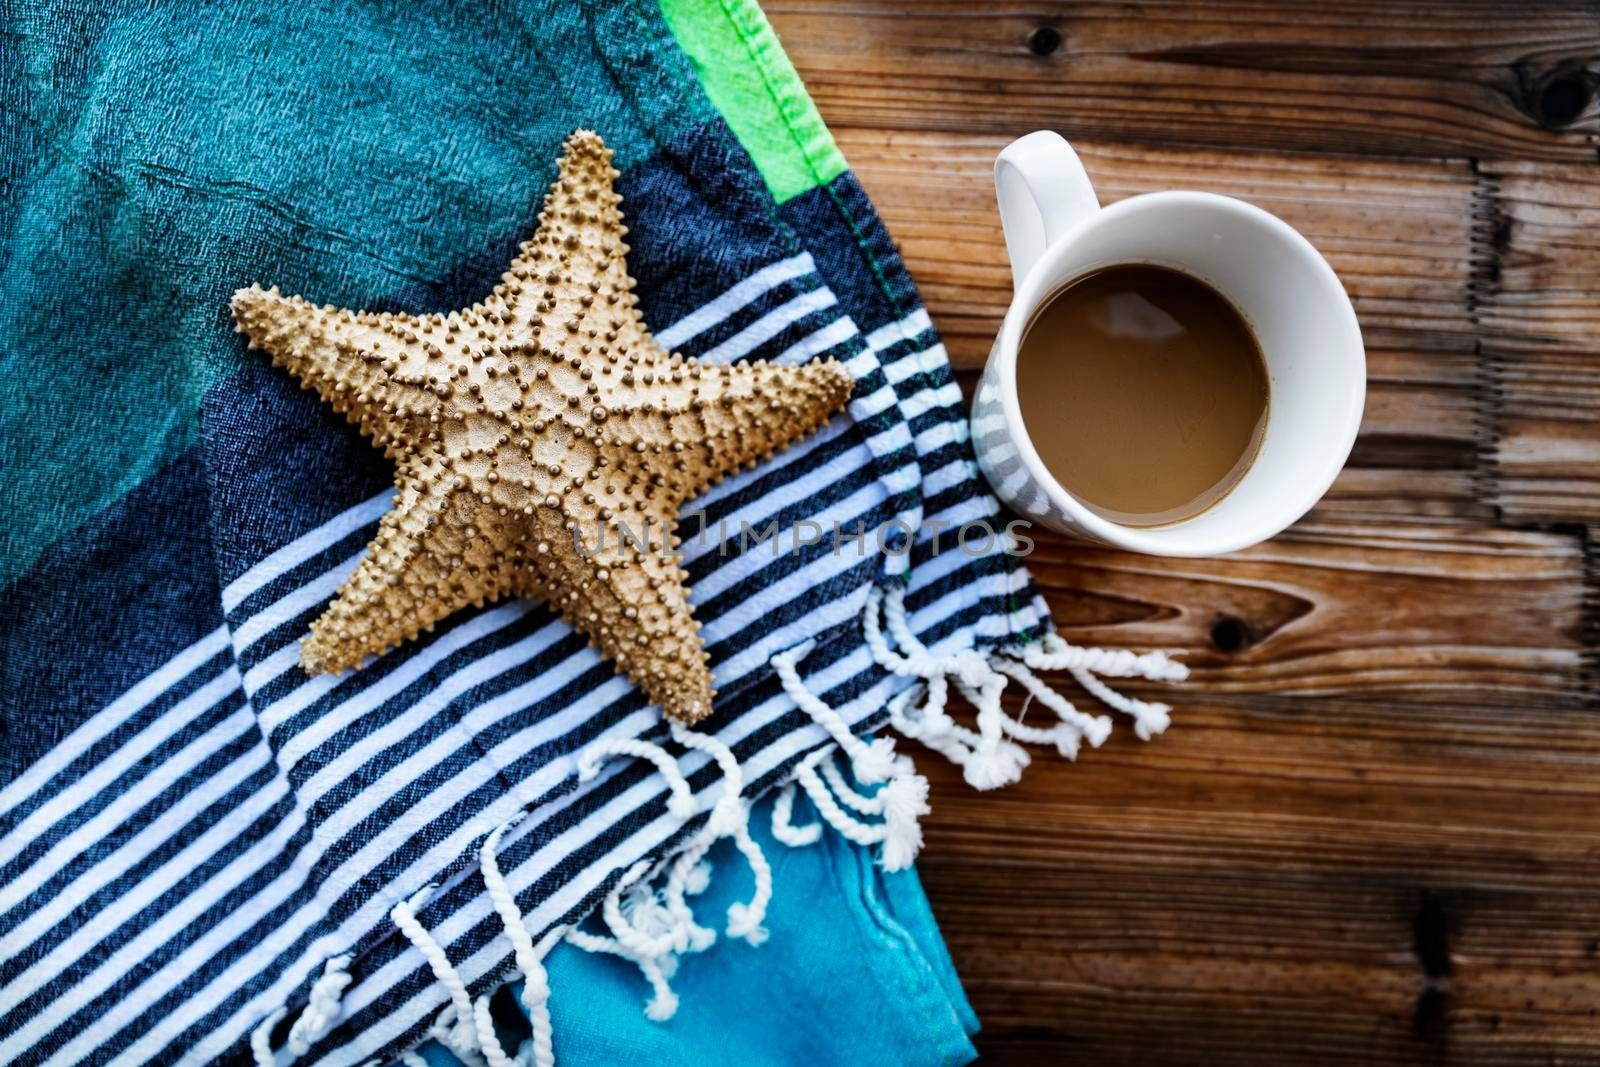 Closeup Photo of a Beautiful Still Life in Beach House. Morning Coffee and Starfish. Relaxing Summer Vacation Concept.